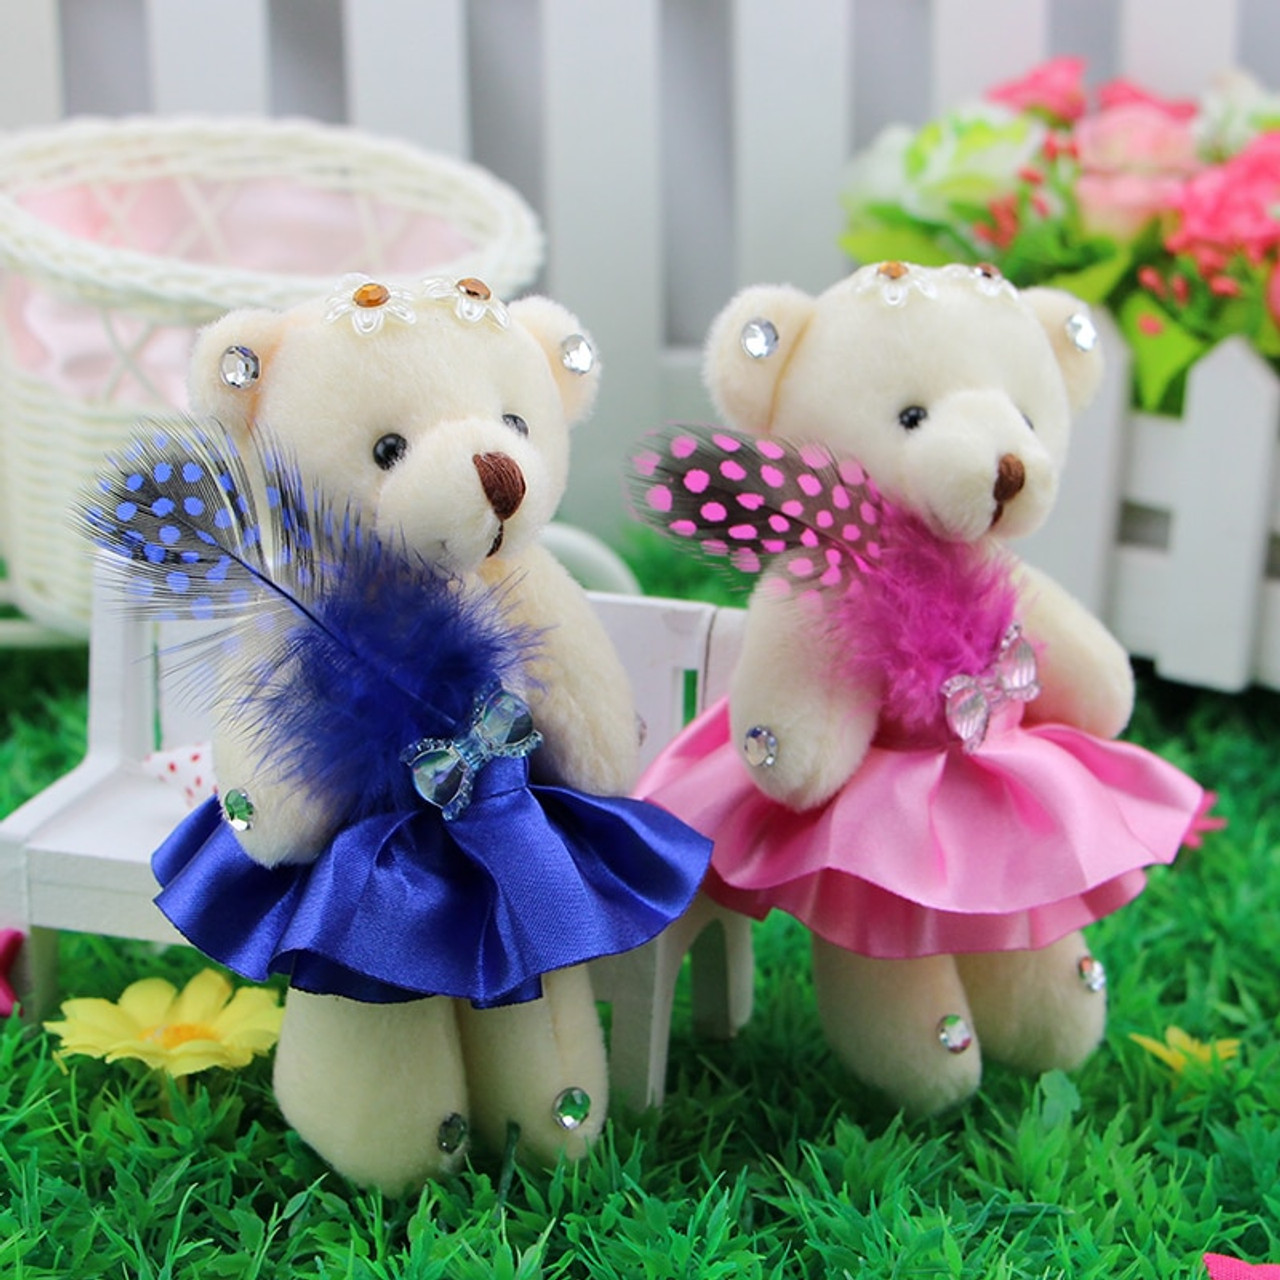 New Fashion 12pcs Lovely Teddy Bear Plush Toys Small Doll Bears For Wedding Cartoon Flower Bouquet Christmas Promotion Gifts Onshopdeals Com Fan page of teddy bears gallery website! new fashion 12pcs lovely teddy bear plush toys small doll bears for wedding cartoon flower bouquet christmas promotion gifts